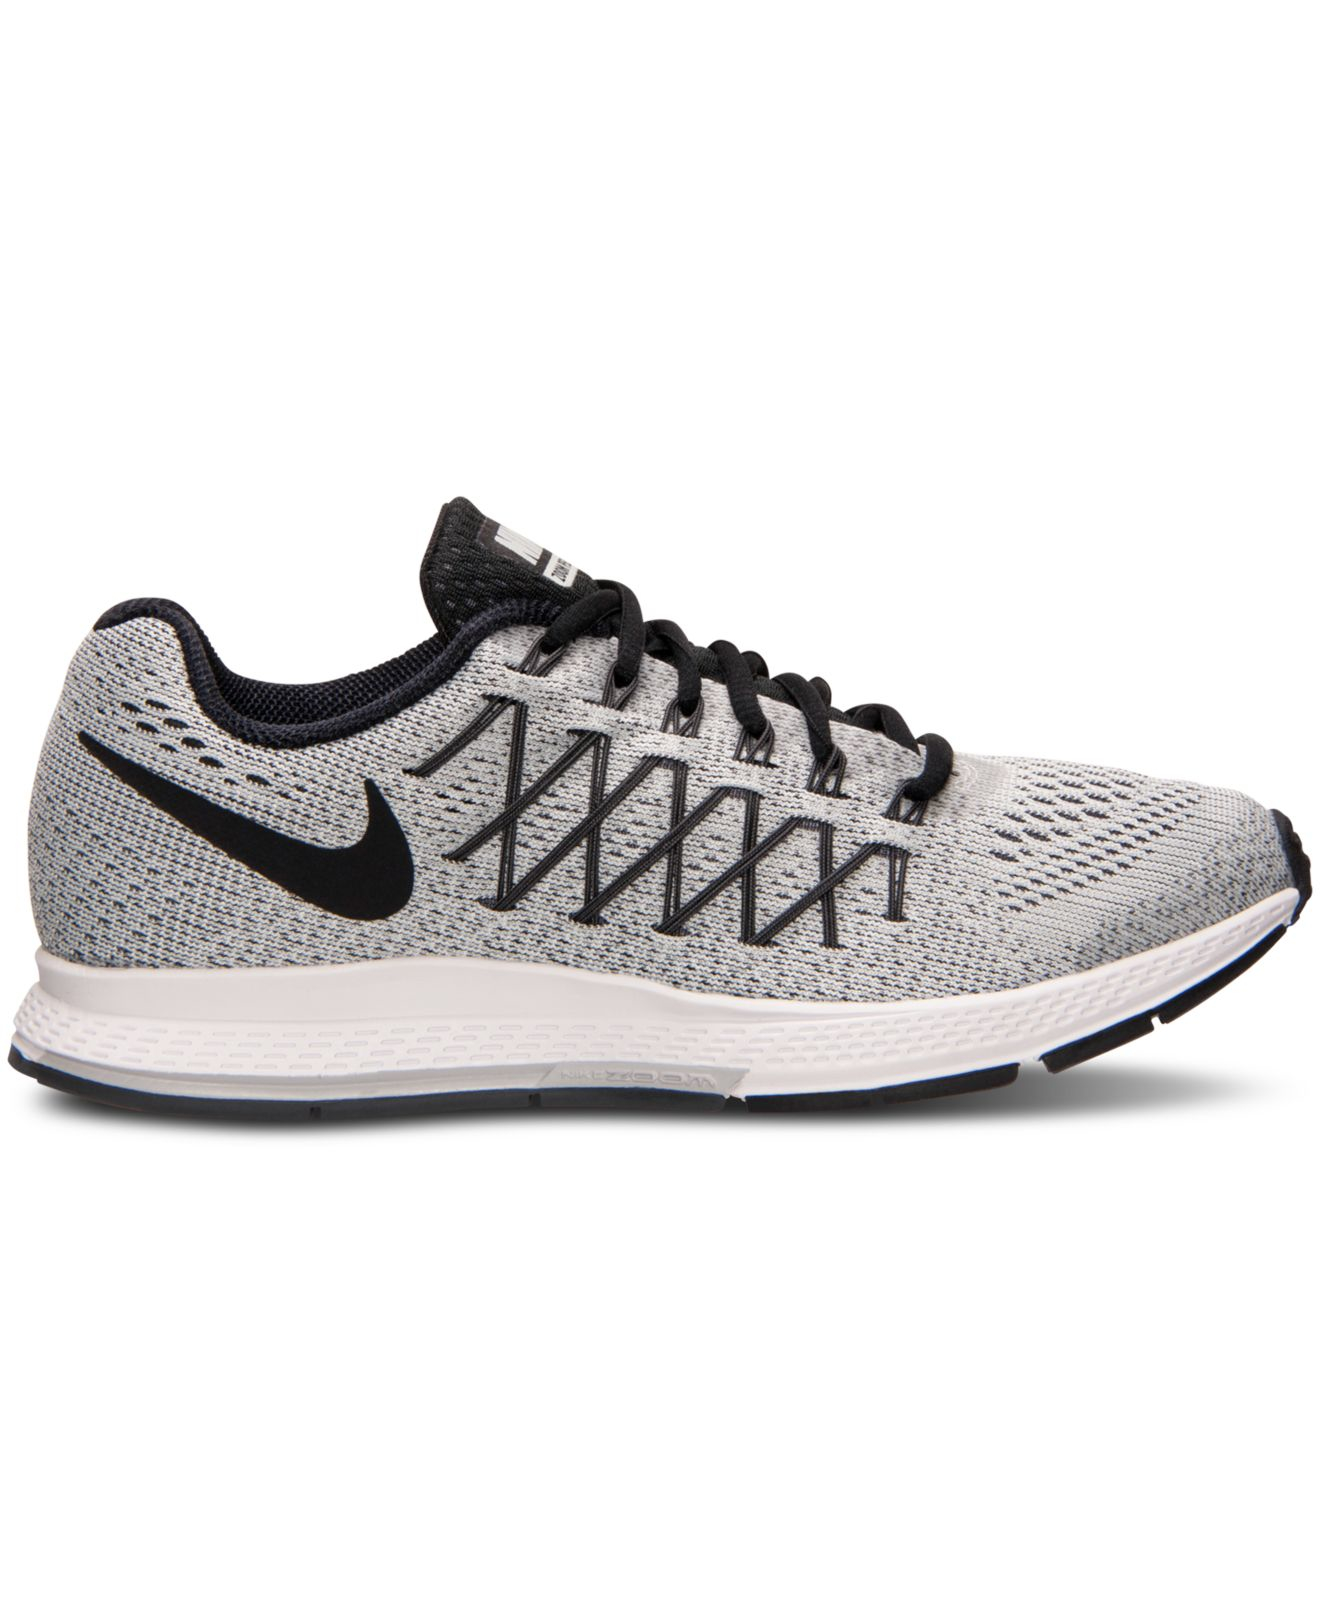 a8ec0f33600f Lyst - Nike Women s Zoom Pegasus 32 Running Sneakers From Finish ...